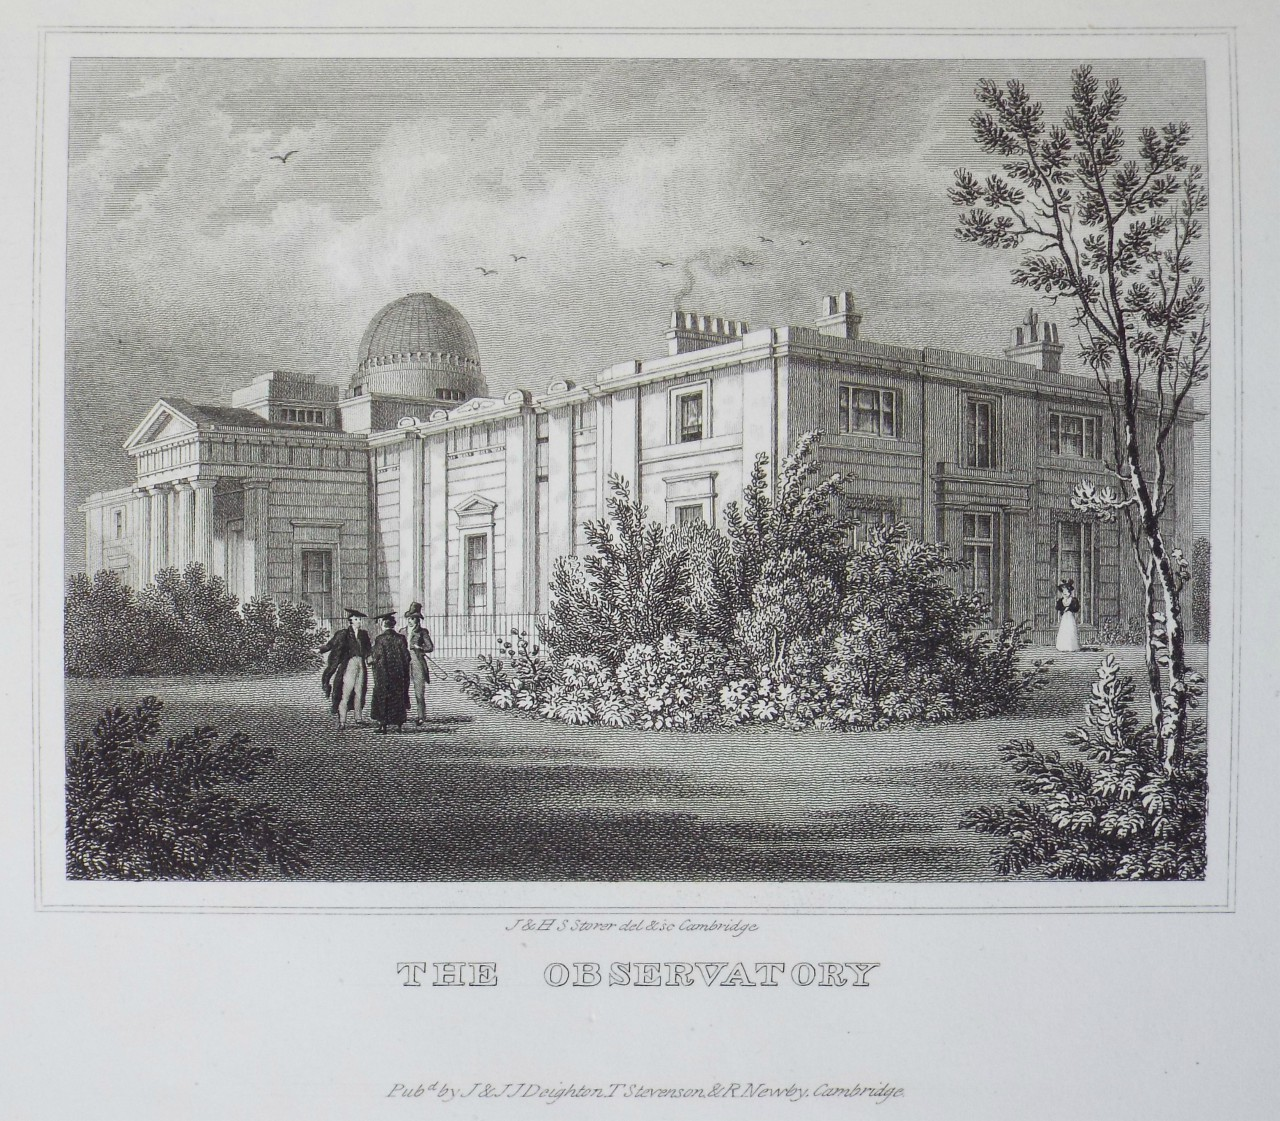 Print - The Observatory - Storer